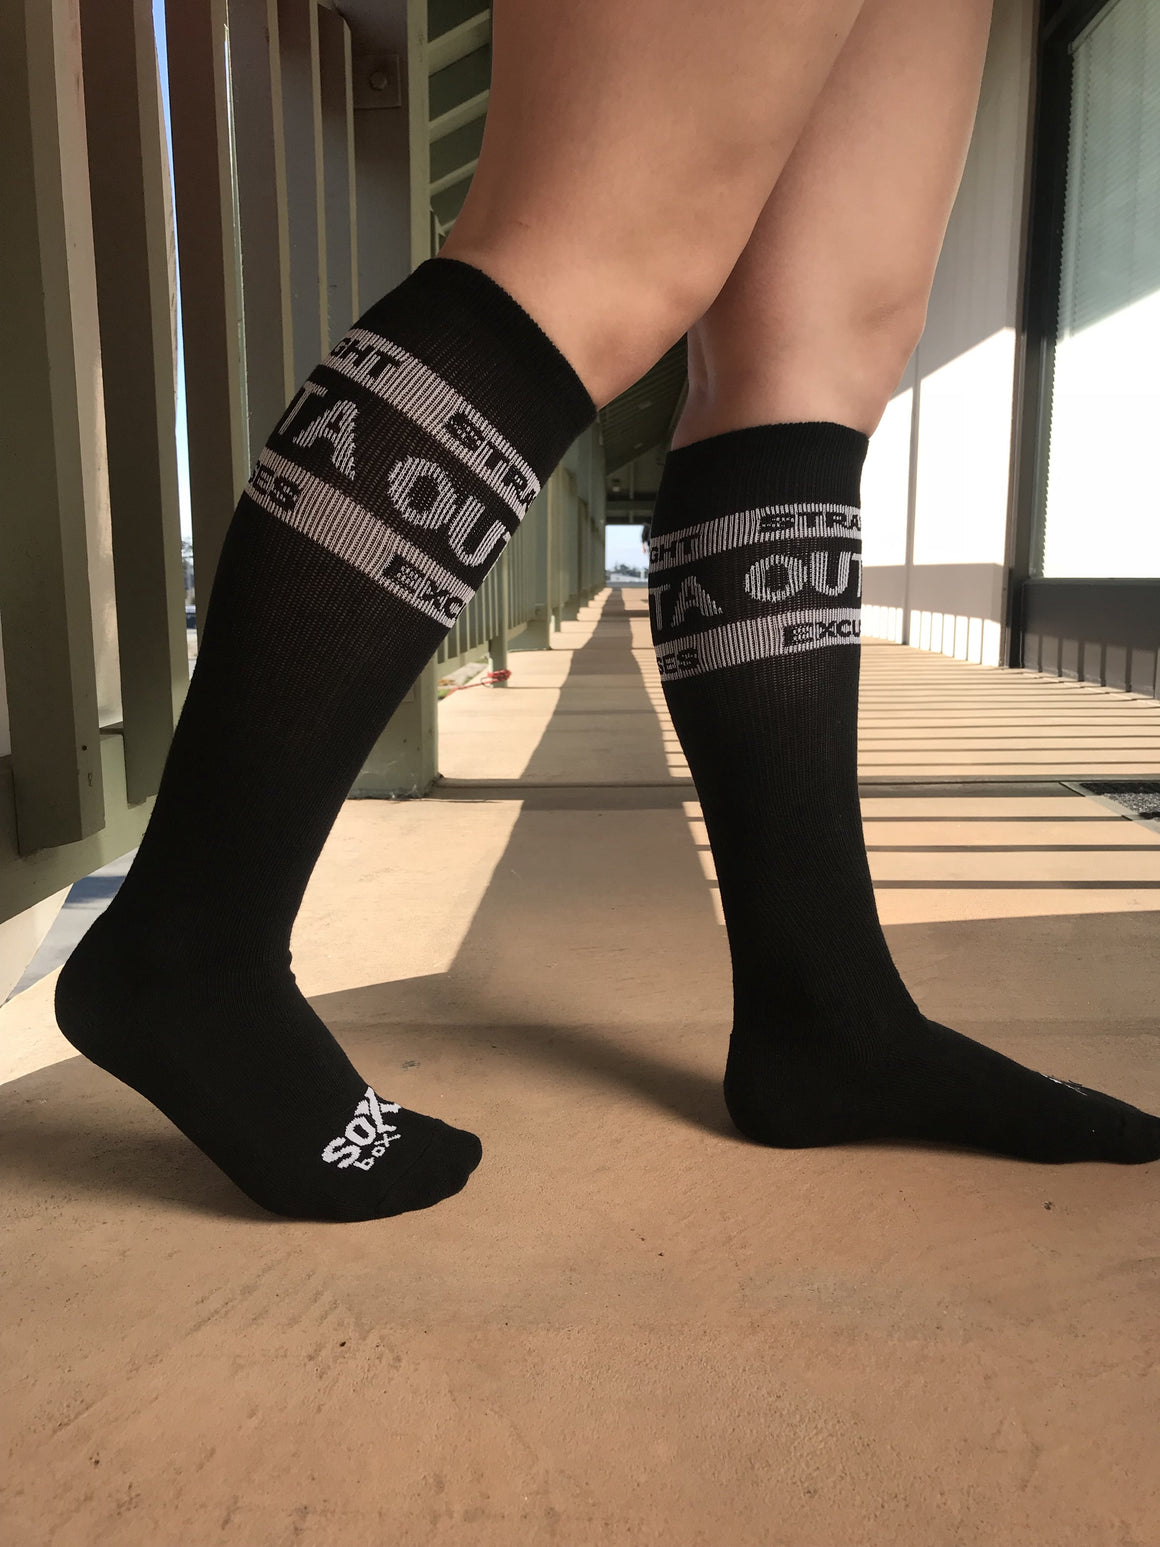 Straight Outta Excuses Black Fun Athletic Knee High Socks - The Sox Box